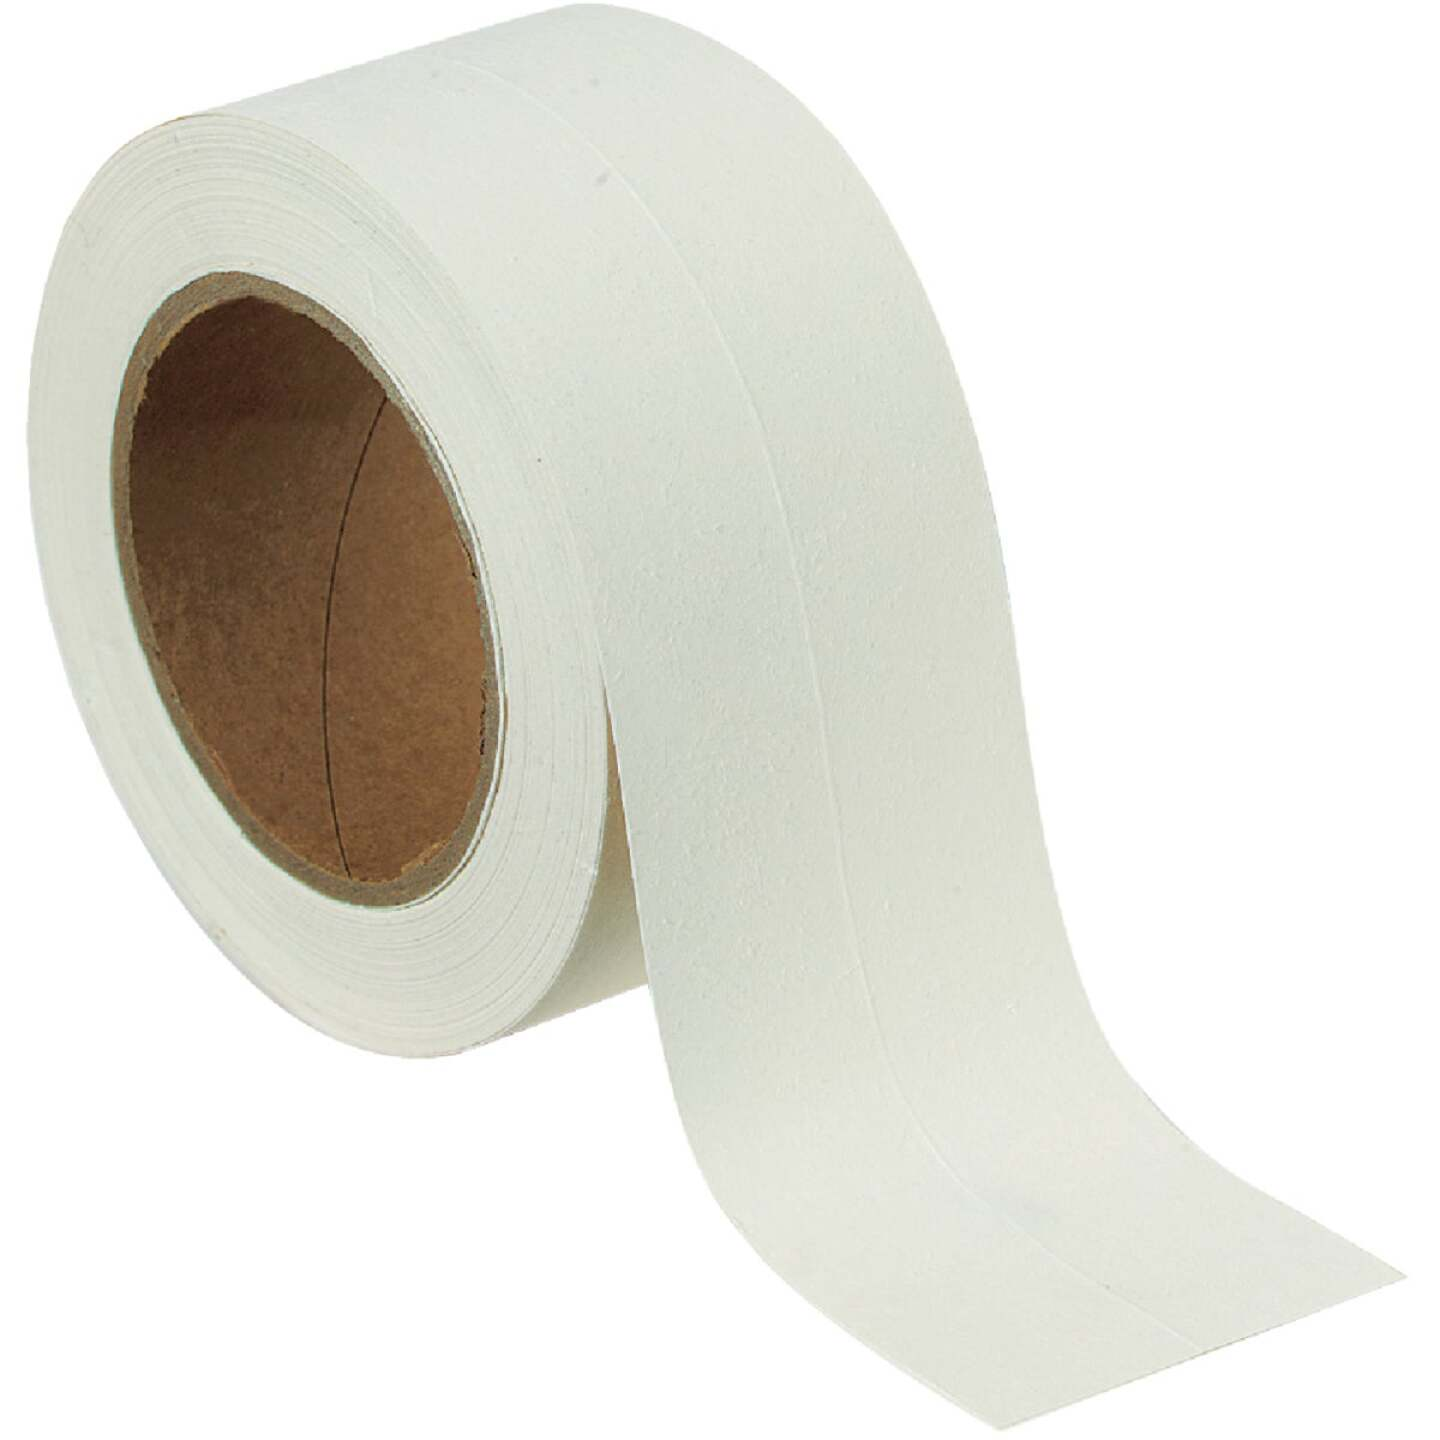 Sheetrock 2-1/16 In. x 75 Ft. Paper Joint Drywall Tape Image 2